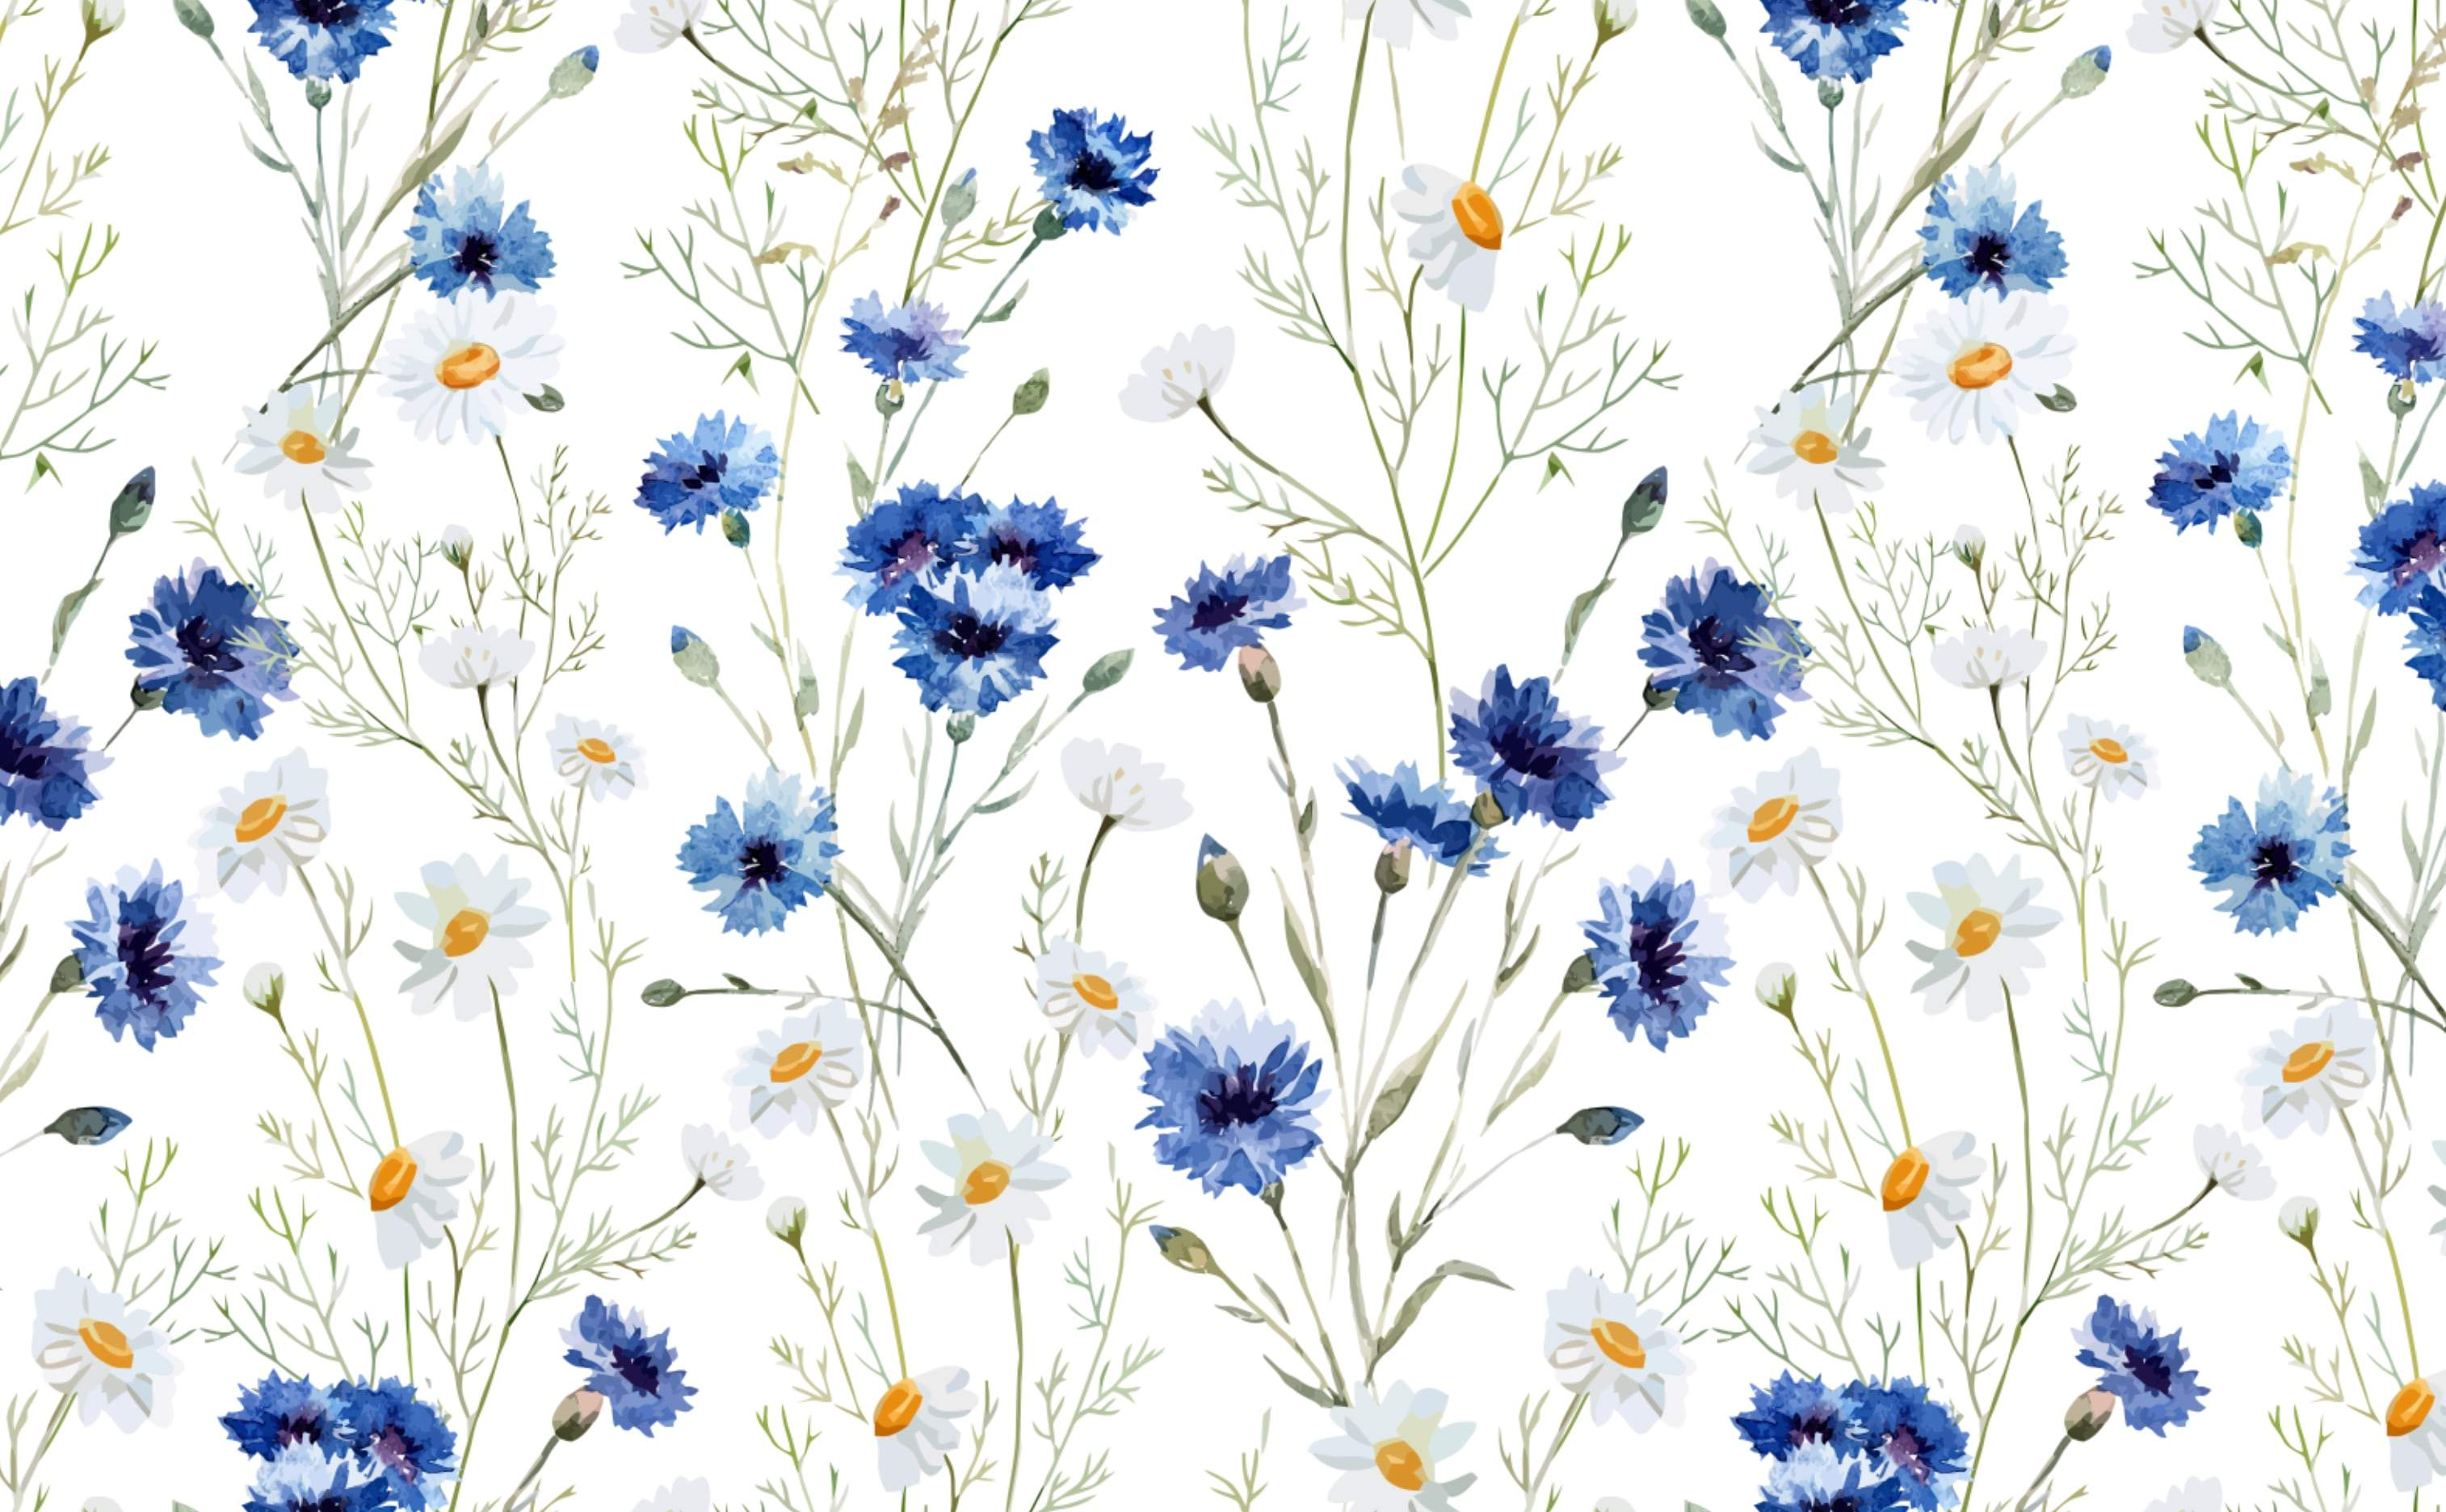 Floral Removable Wallpapers For A Fun & Cheerful Interior